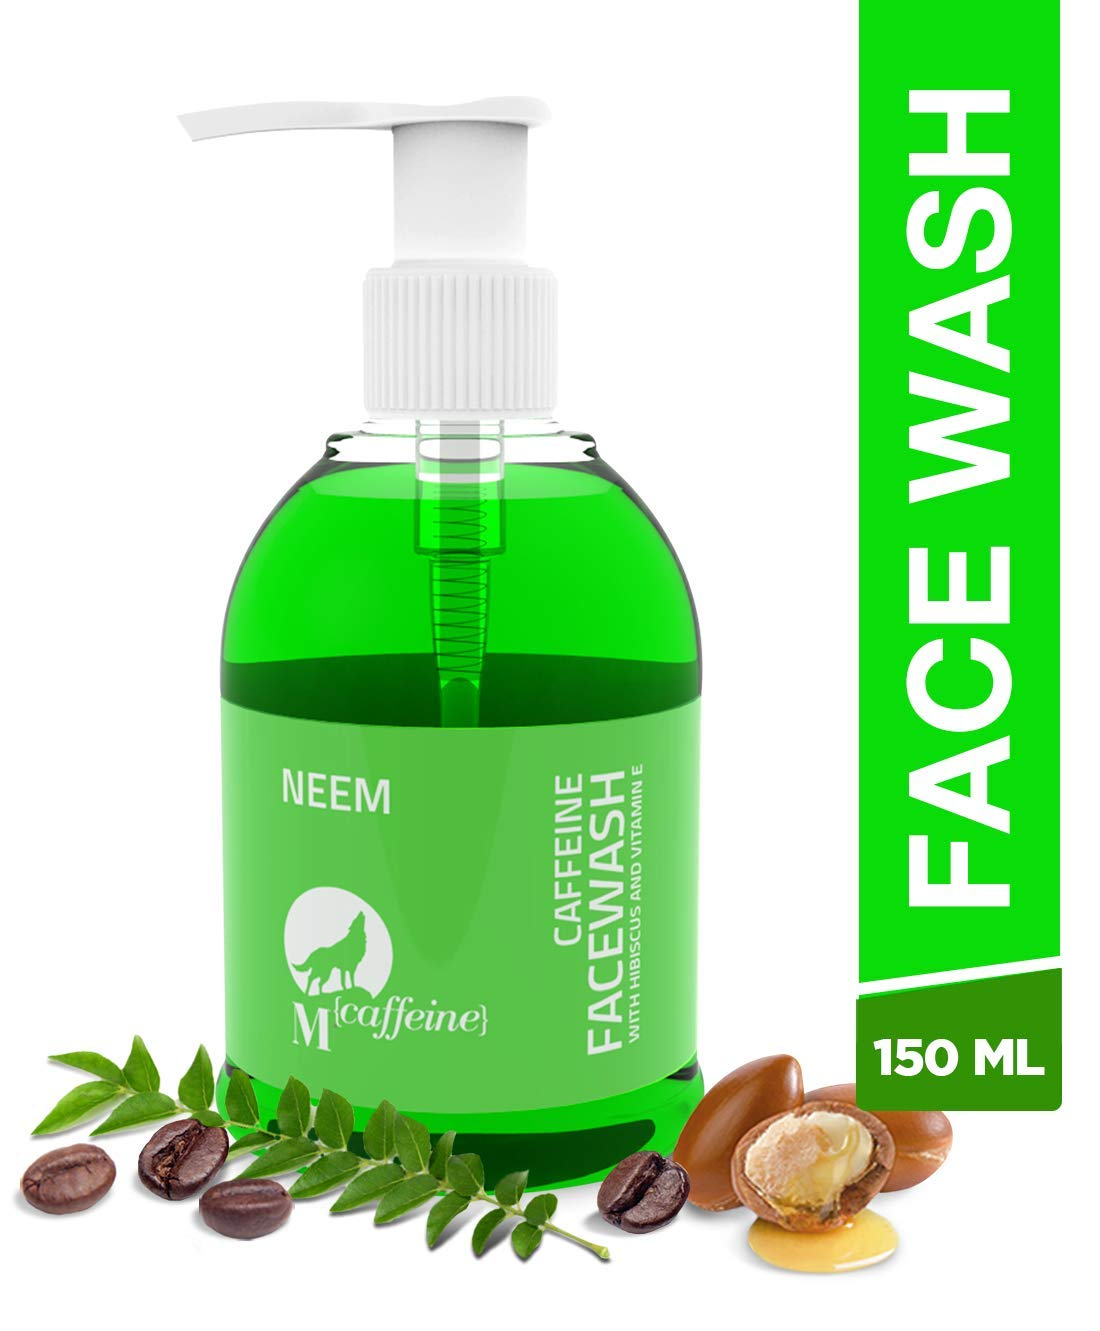 Mcaffeine Neem Face Wash Cleanser With Argan Oil & Vitamin E For Men And Women - 150 ml product image